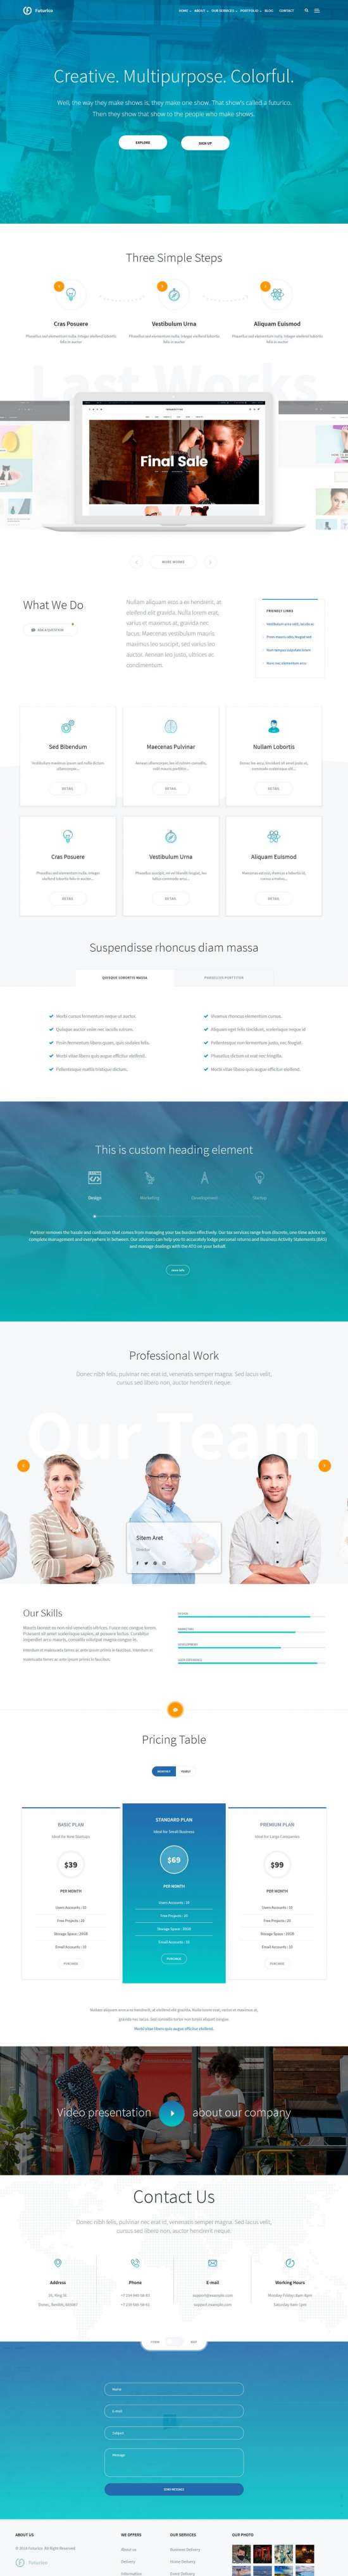 futurico wordpress theme 01 550x4077 - Futurico WordPress Theme